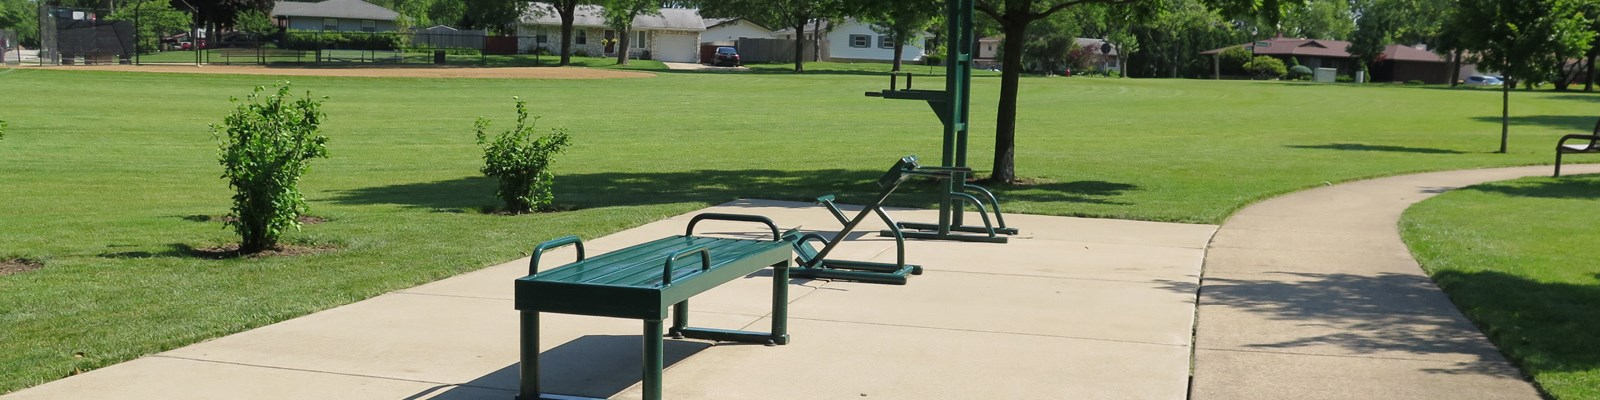 Fairchild Park, Fitness, Fields, Playground and More